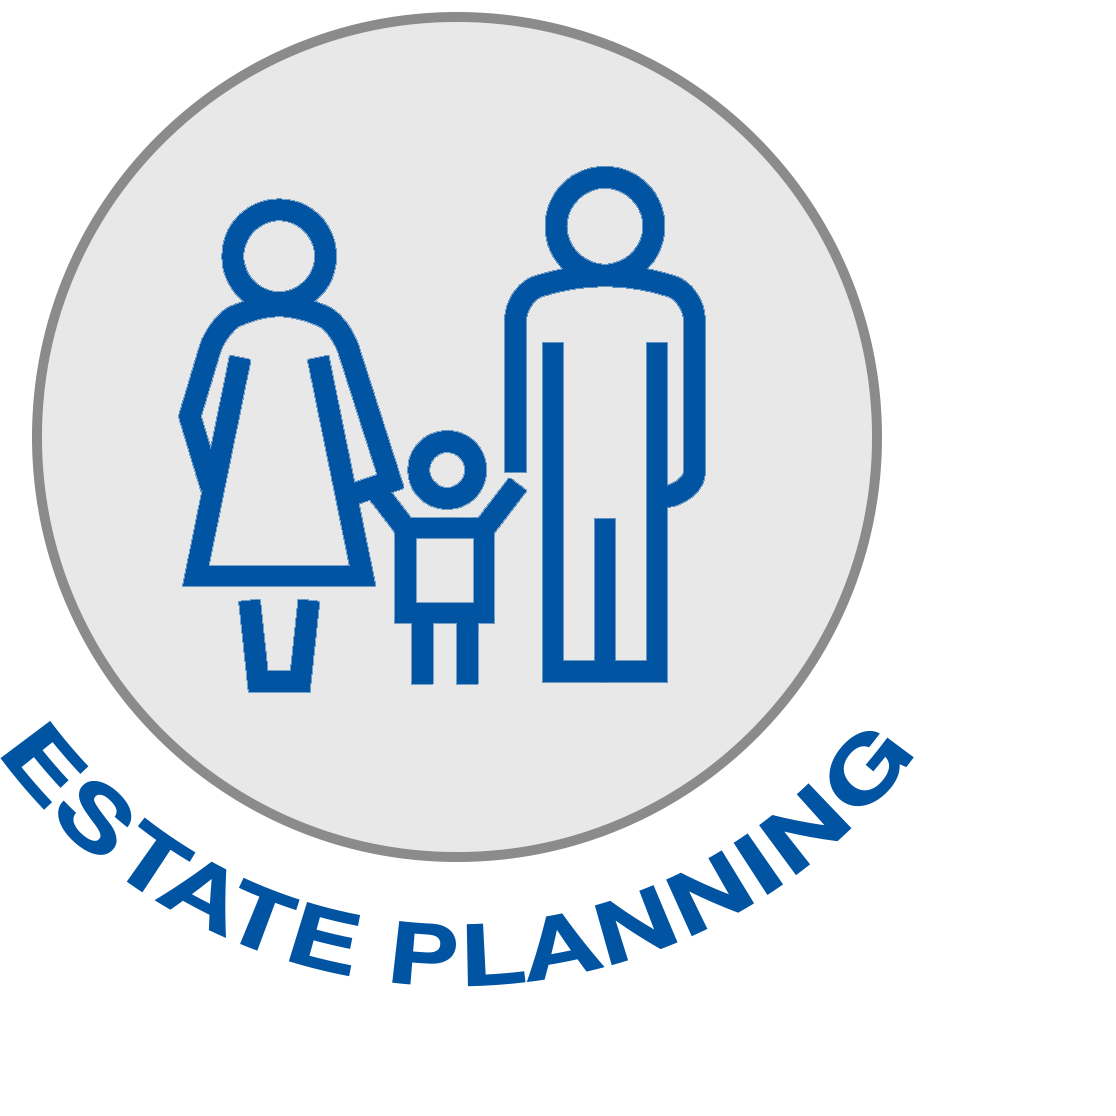 Columbia County Estate planning lawyer